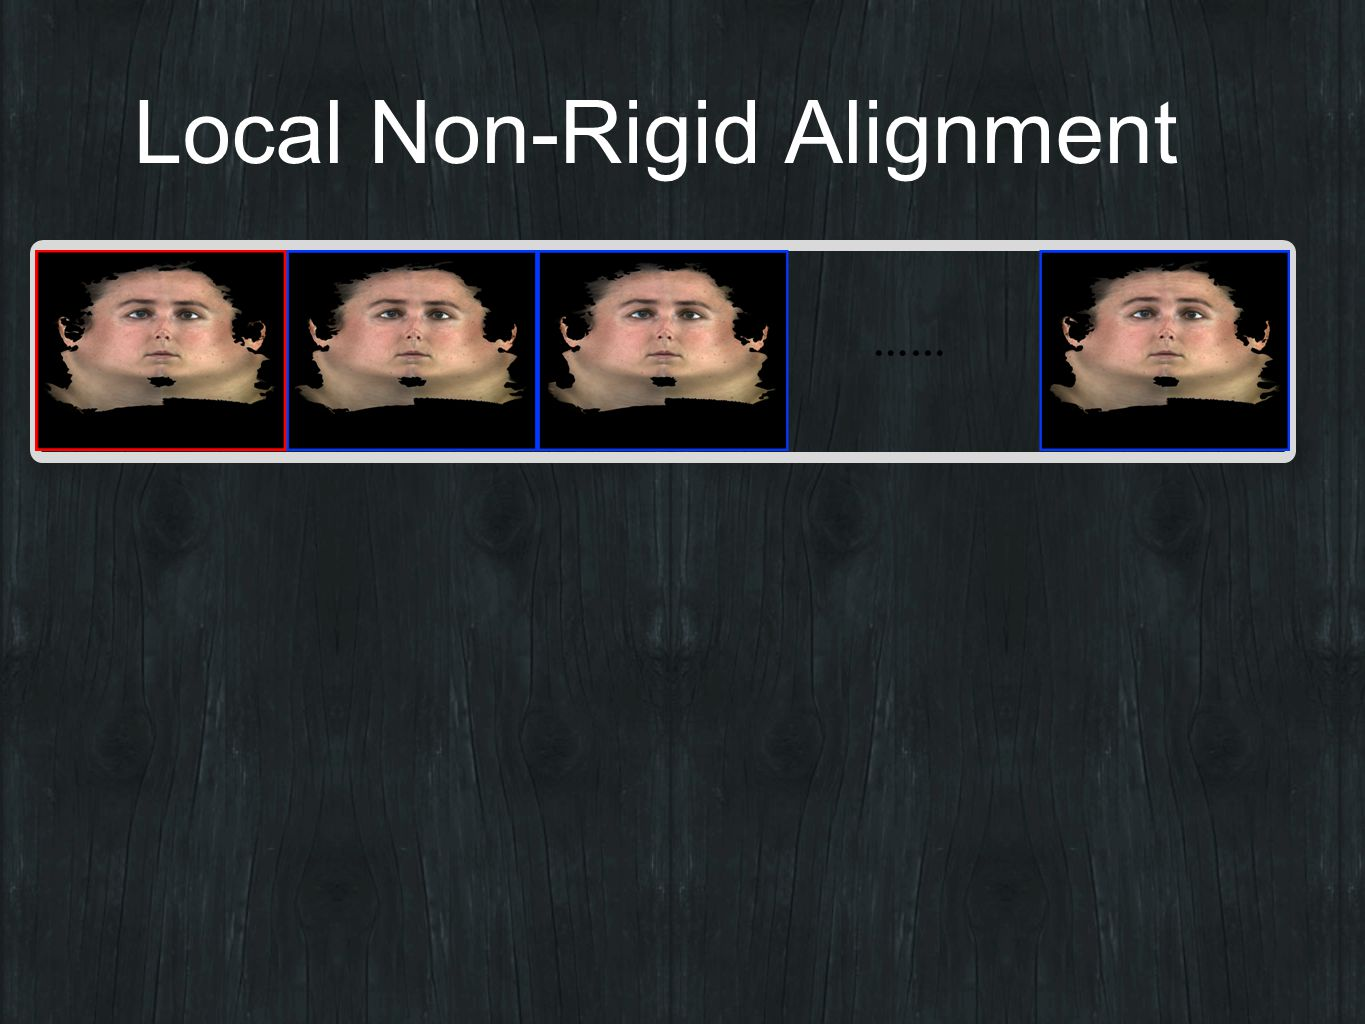 Local Non-Rigid Alignment